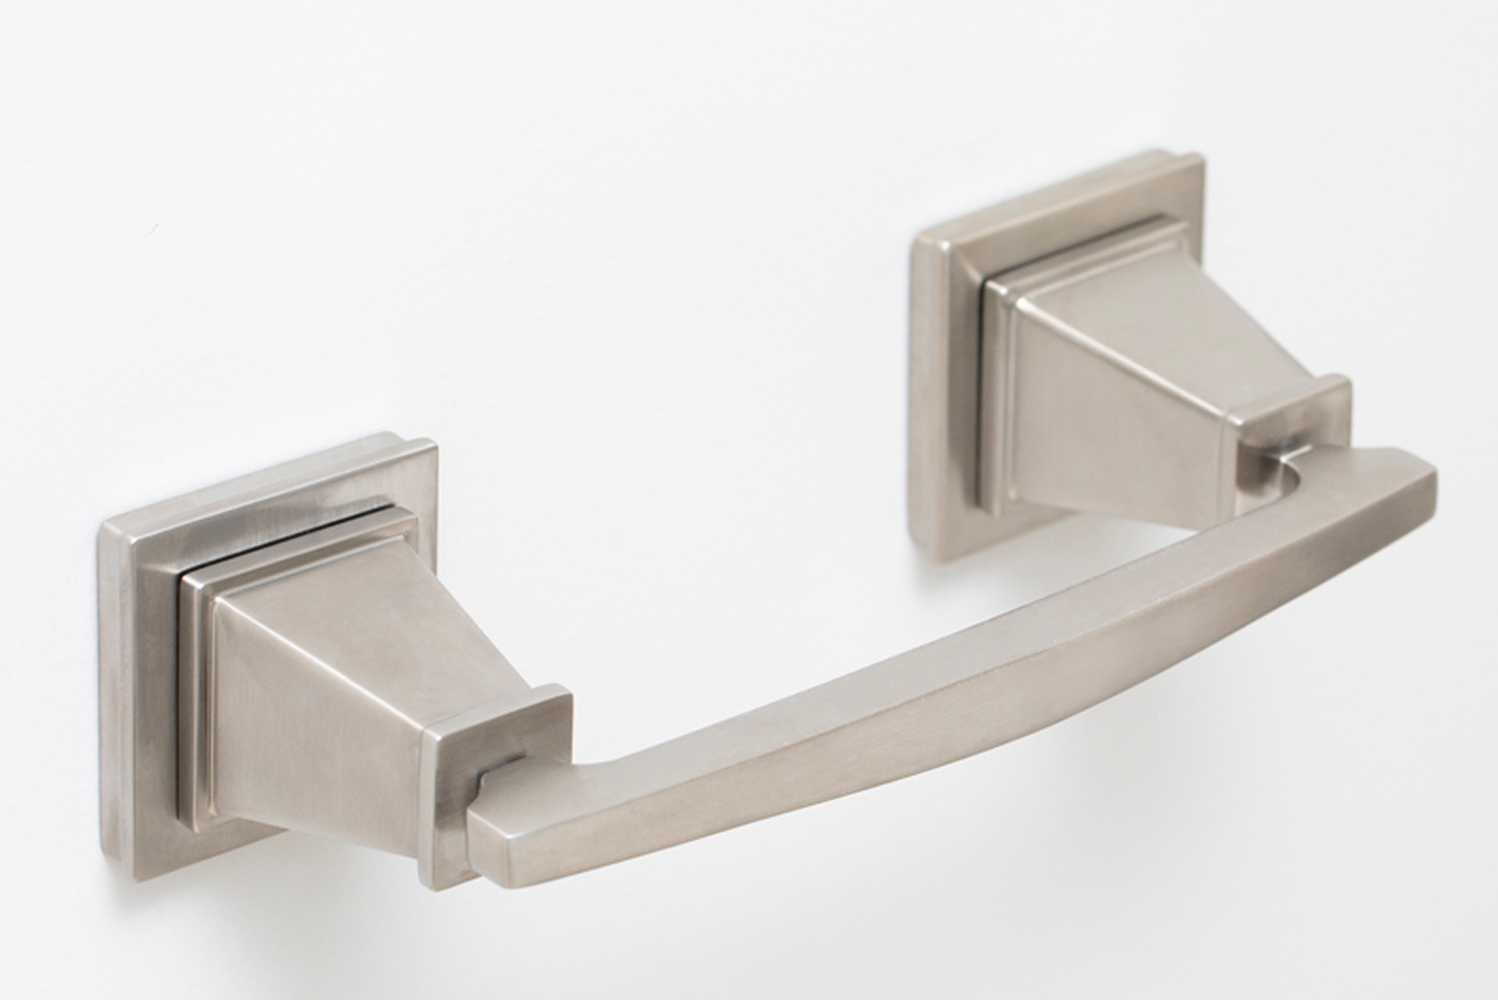 The bathroom accessories range from towel rings to robe hooks, all complementary to the Malvina fixtures' signature geometric profile.